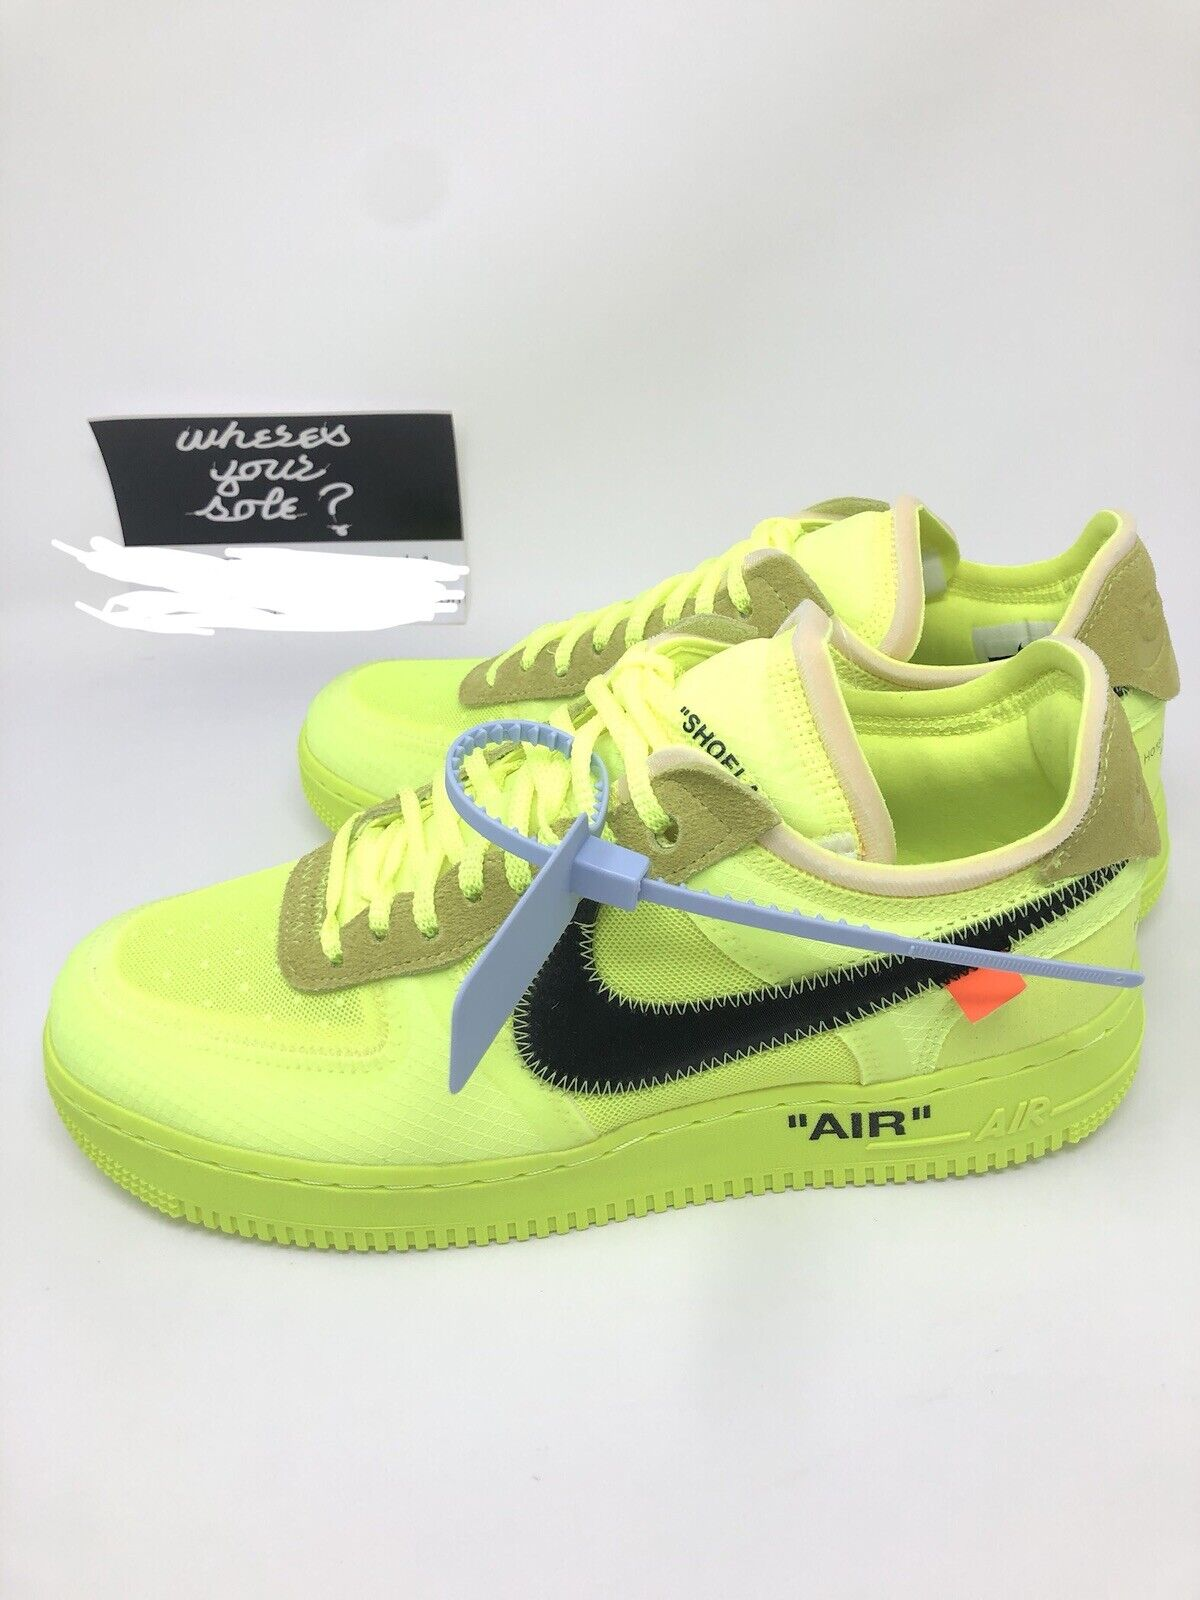 Nike Off White The Ten  Air Force 1 Low Volt size 8.5 New DS A04606-700 Virgil